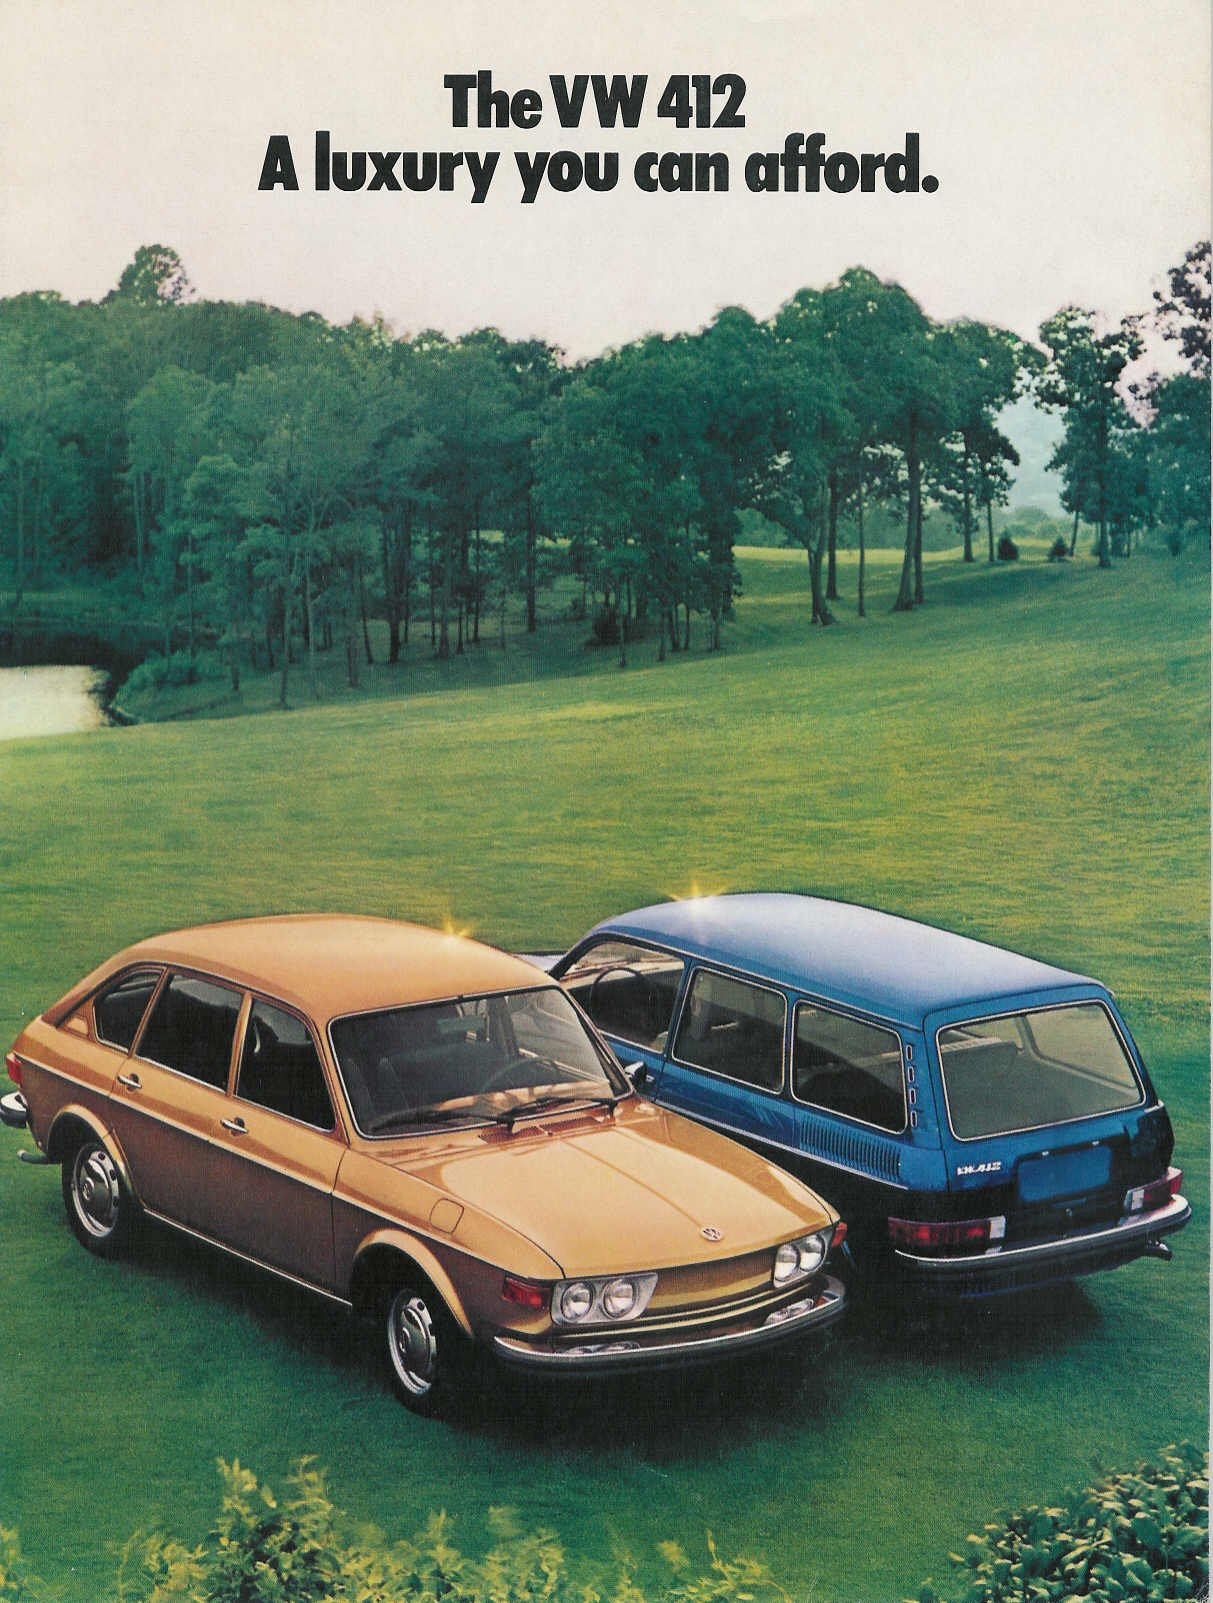 1973 VW 412 Sales Brochure